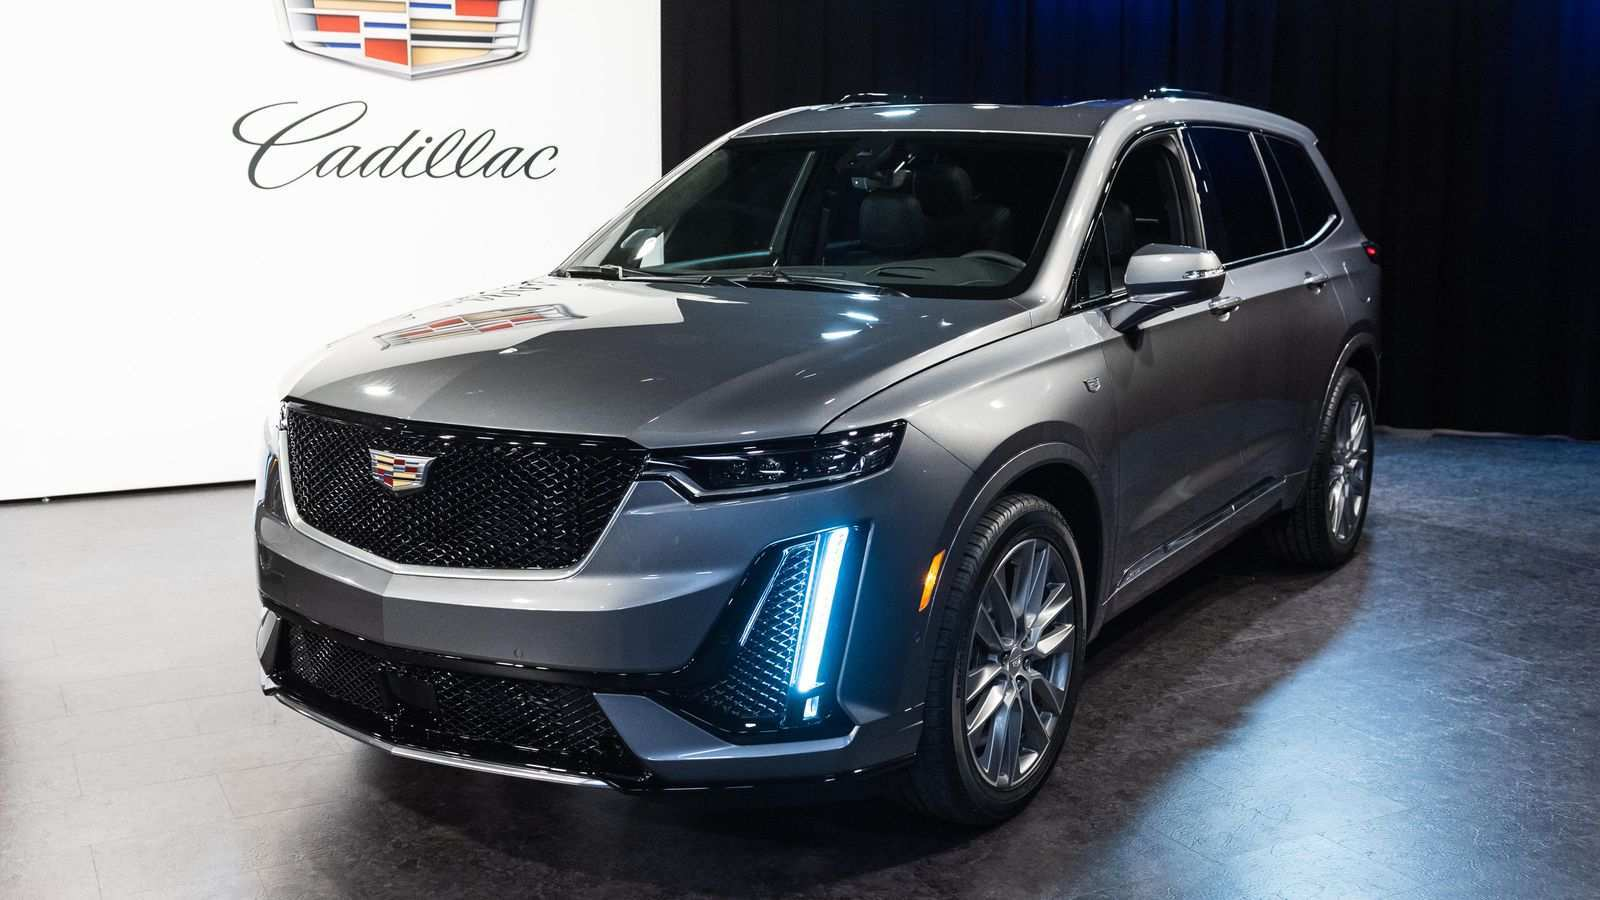 64 The 2020 Cadillac Escalade Video Redesign And Concept